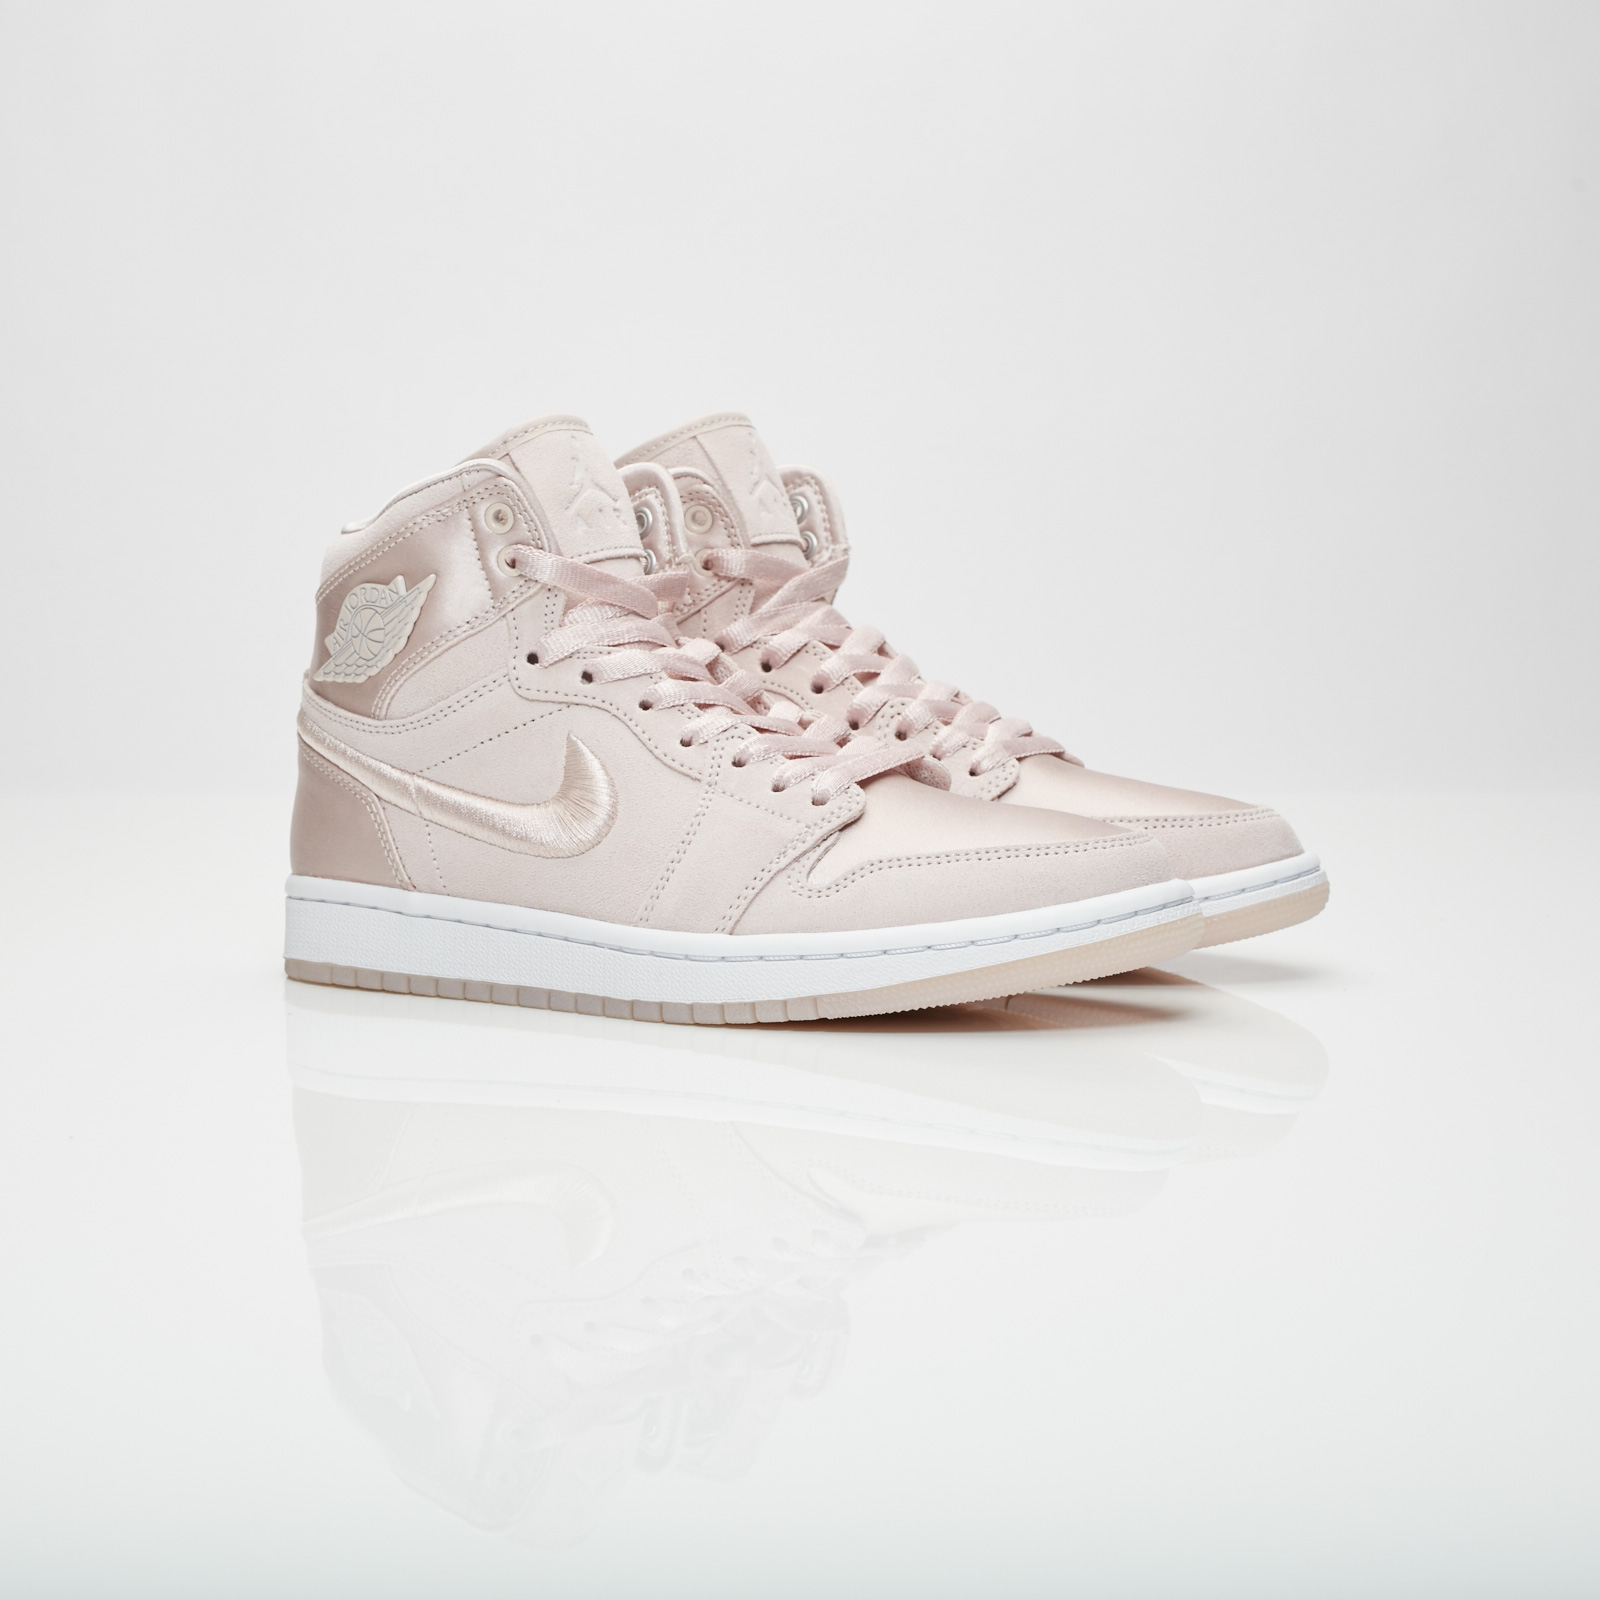 861fa4e76730 Jordan Brand Wmns Air Jordan 1 Retro High SOH - Ao1847-650 ...